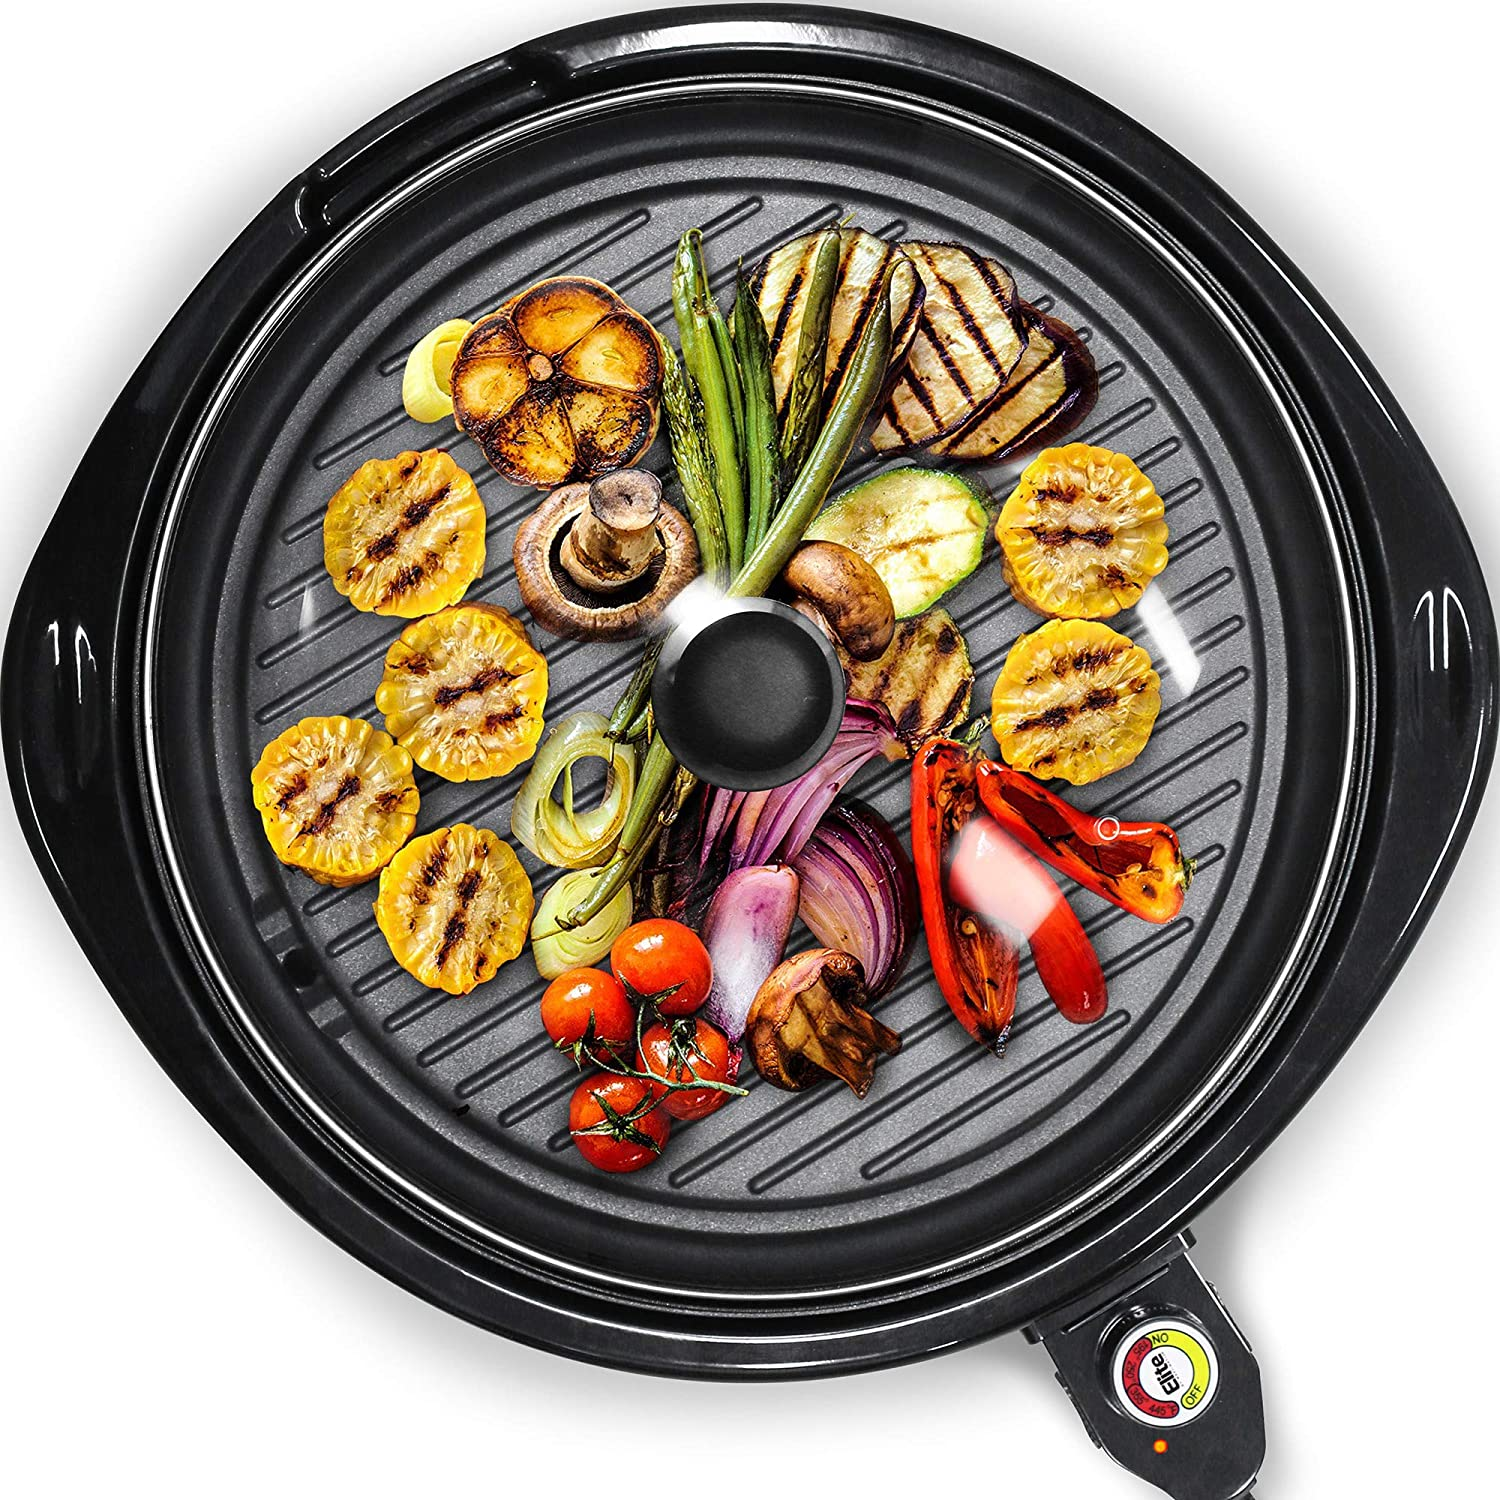 Maxi-Matic Smokeless Electric Indoor BBQ Grill - Best Compact Indoor Grill